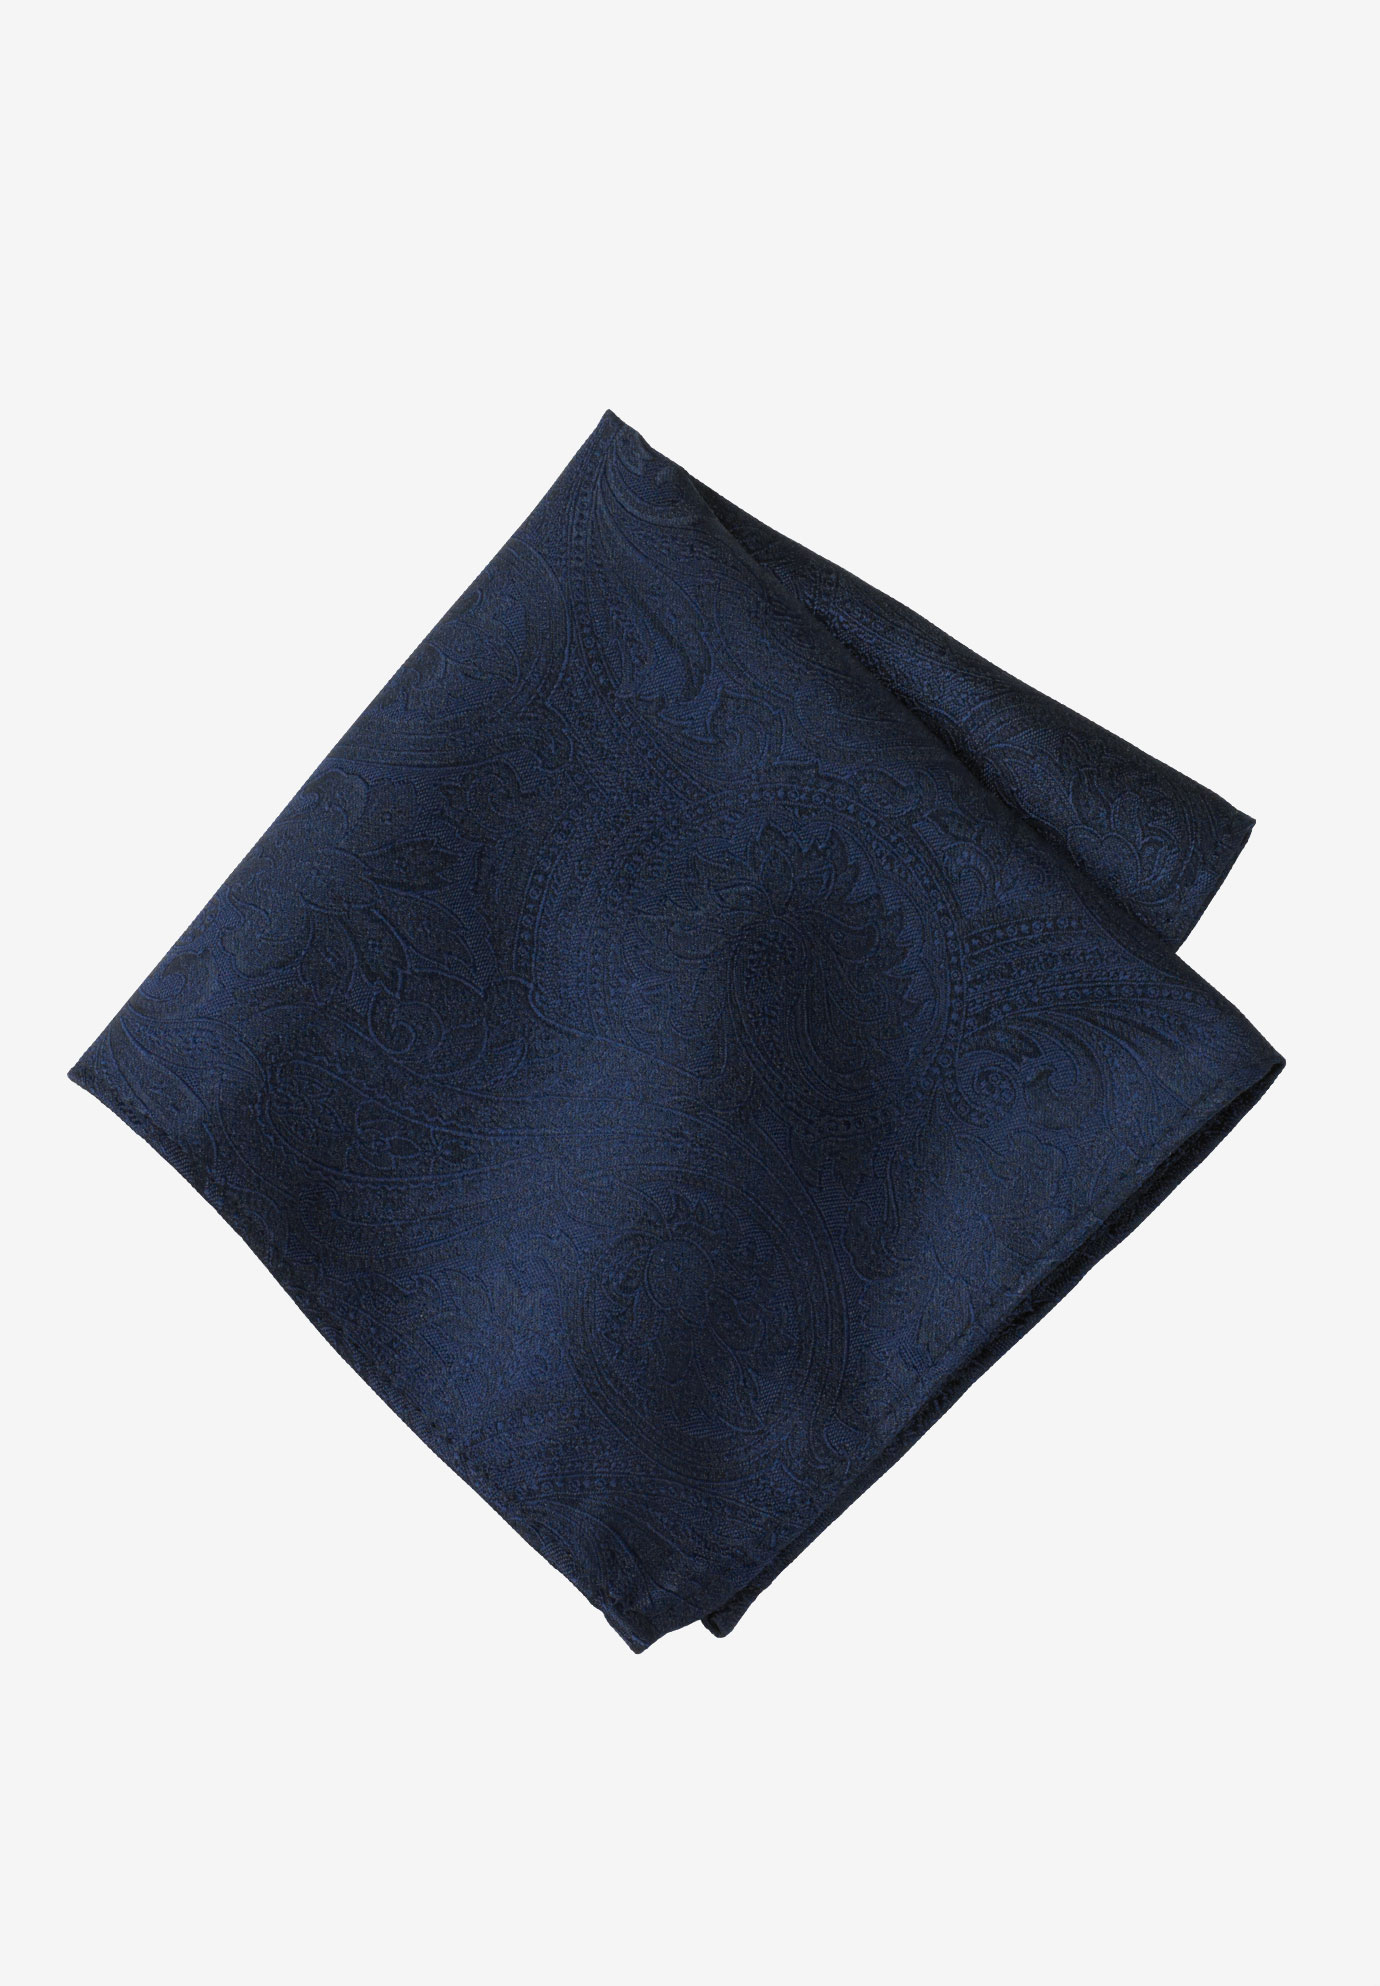 Pocket Square by KS Signature, NAVY PAISLEY